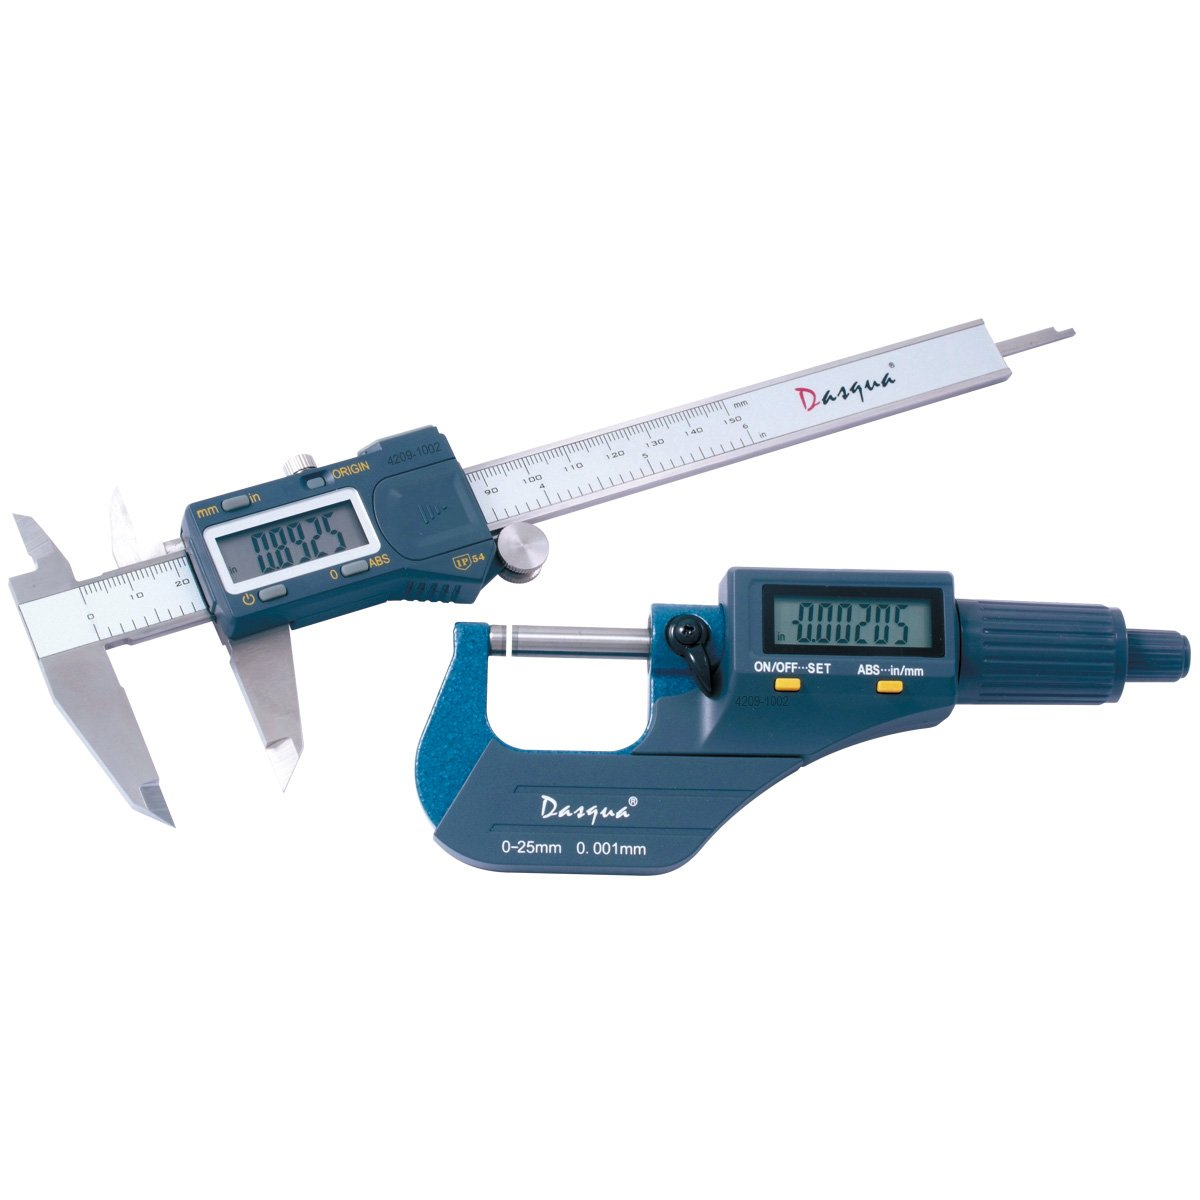 Dasqua 4209-1002 IP54 2 Piece Absolute Electronic Caliper and Micrometer Inspection Tool Kit HHIP